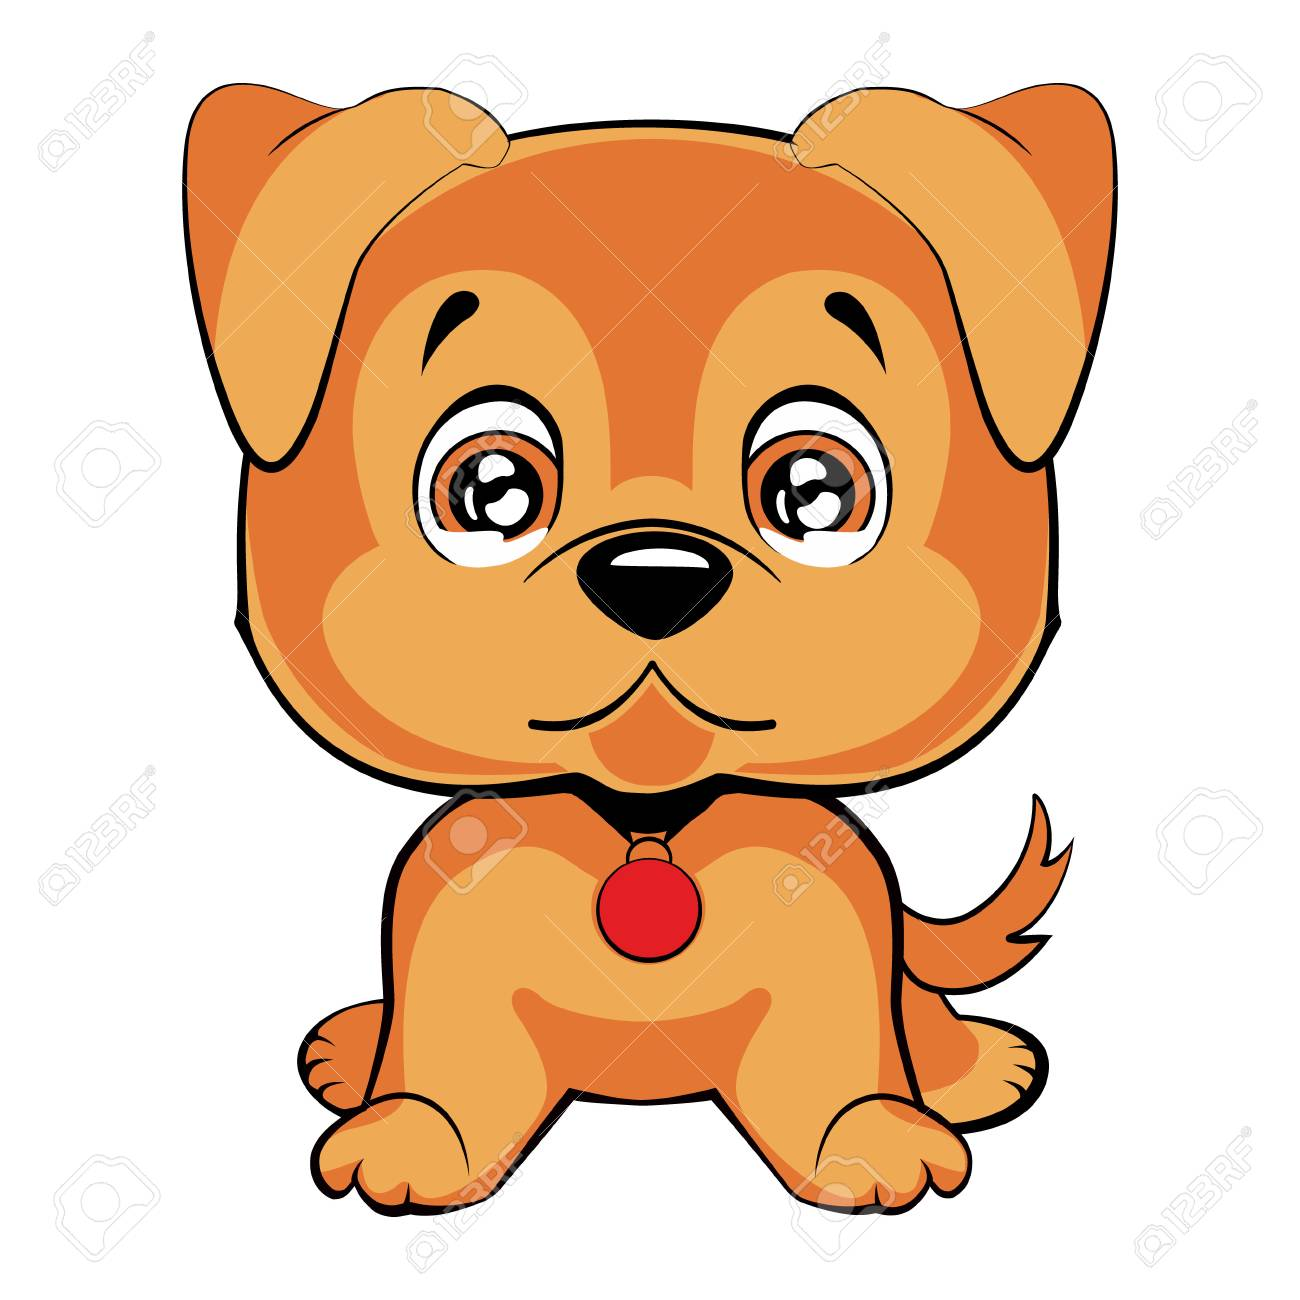 Cute Cartoon Dog Children S Illustration Funny Baby Animal Royalty Free Cliparts Vectors And Stock Illustration Image 75415107